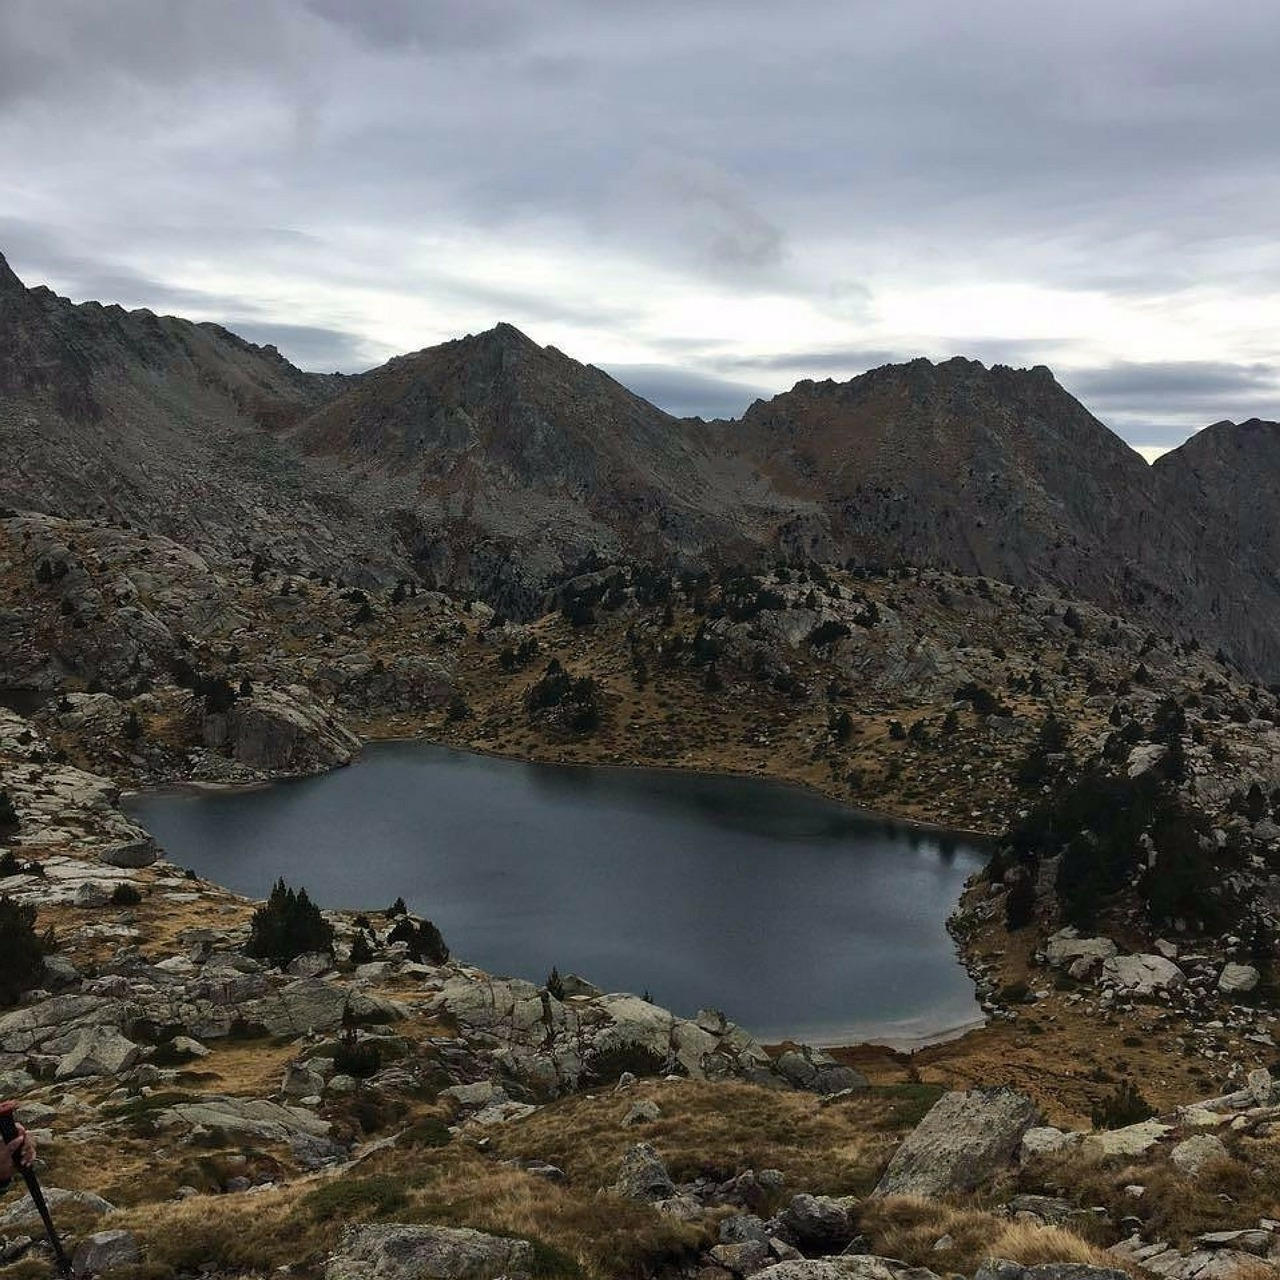 pyrenees lake landscapes free photo